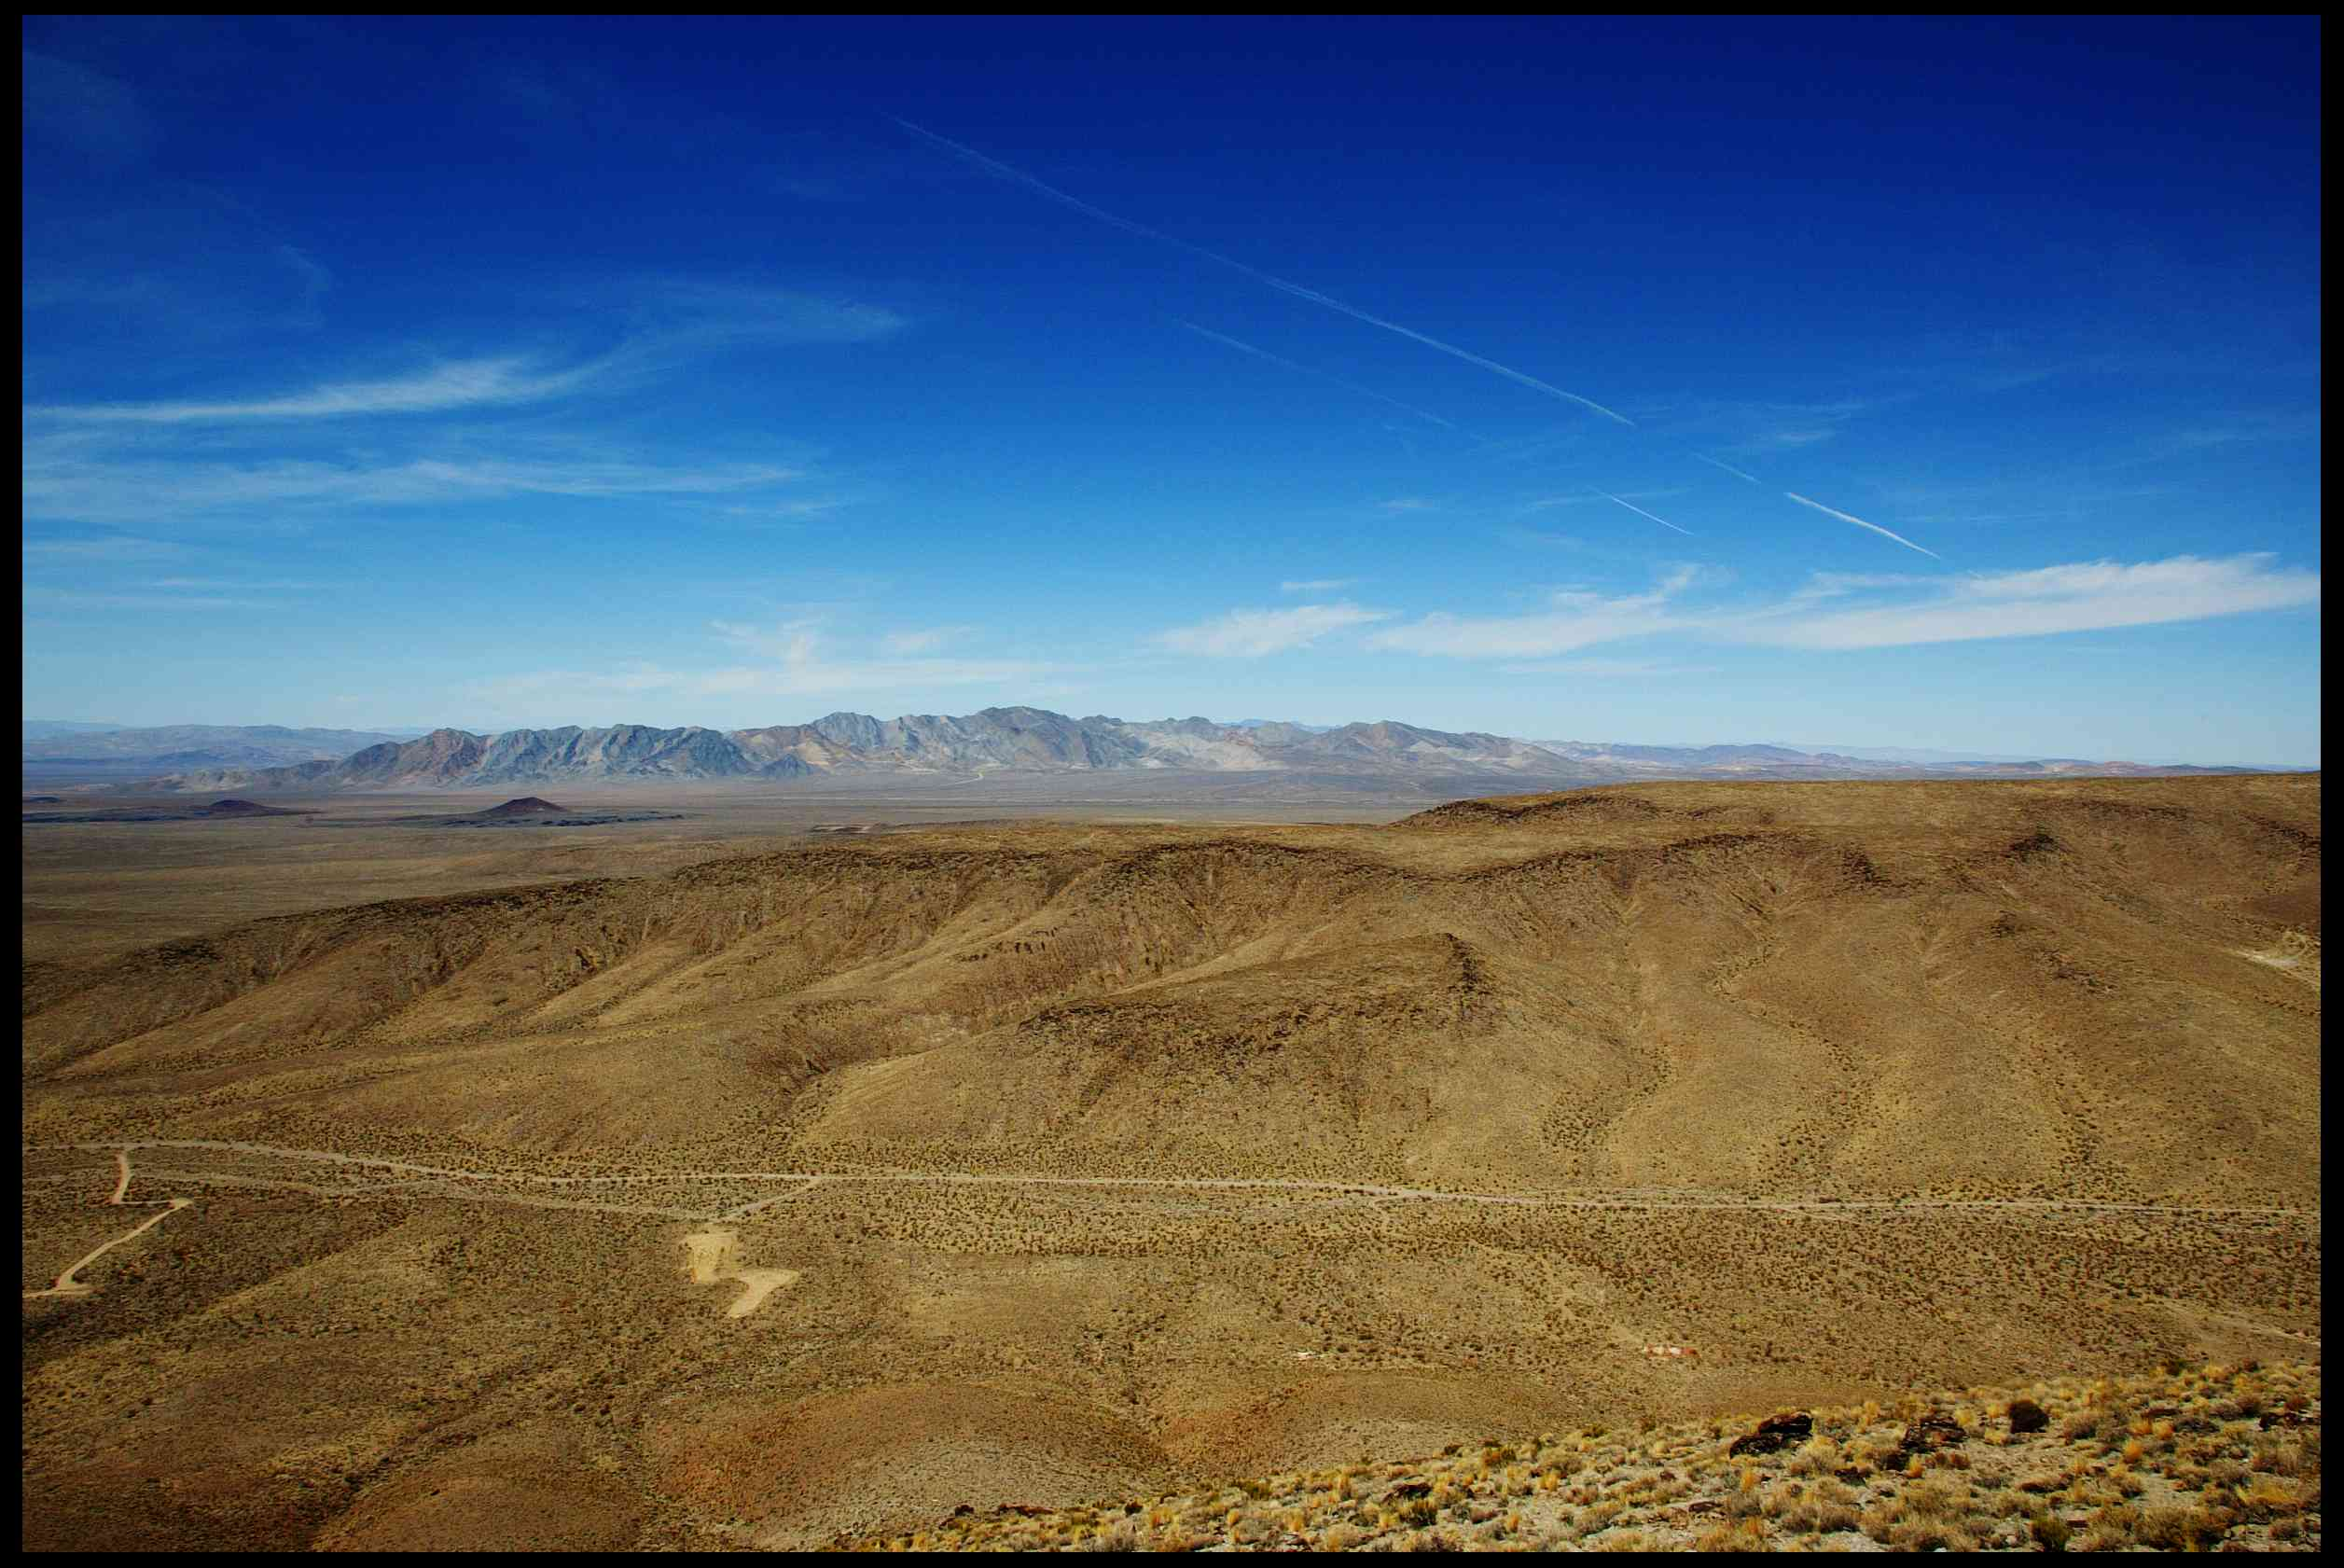 The view from the top of the Yucca Mountain Nuclear Waste Repository in Nevada